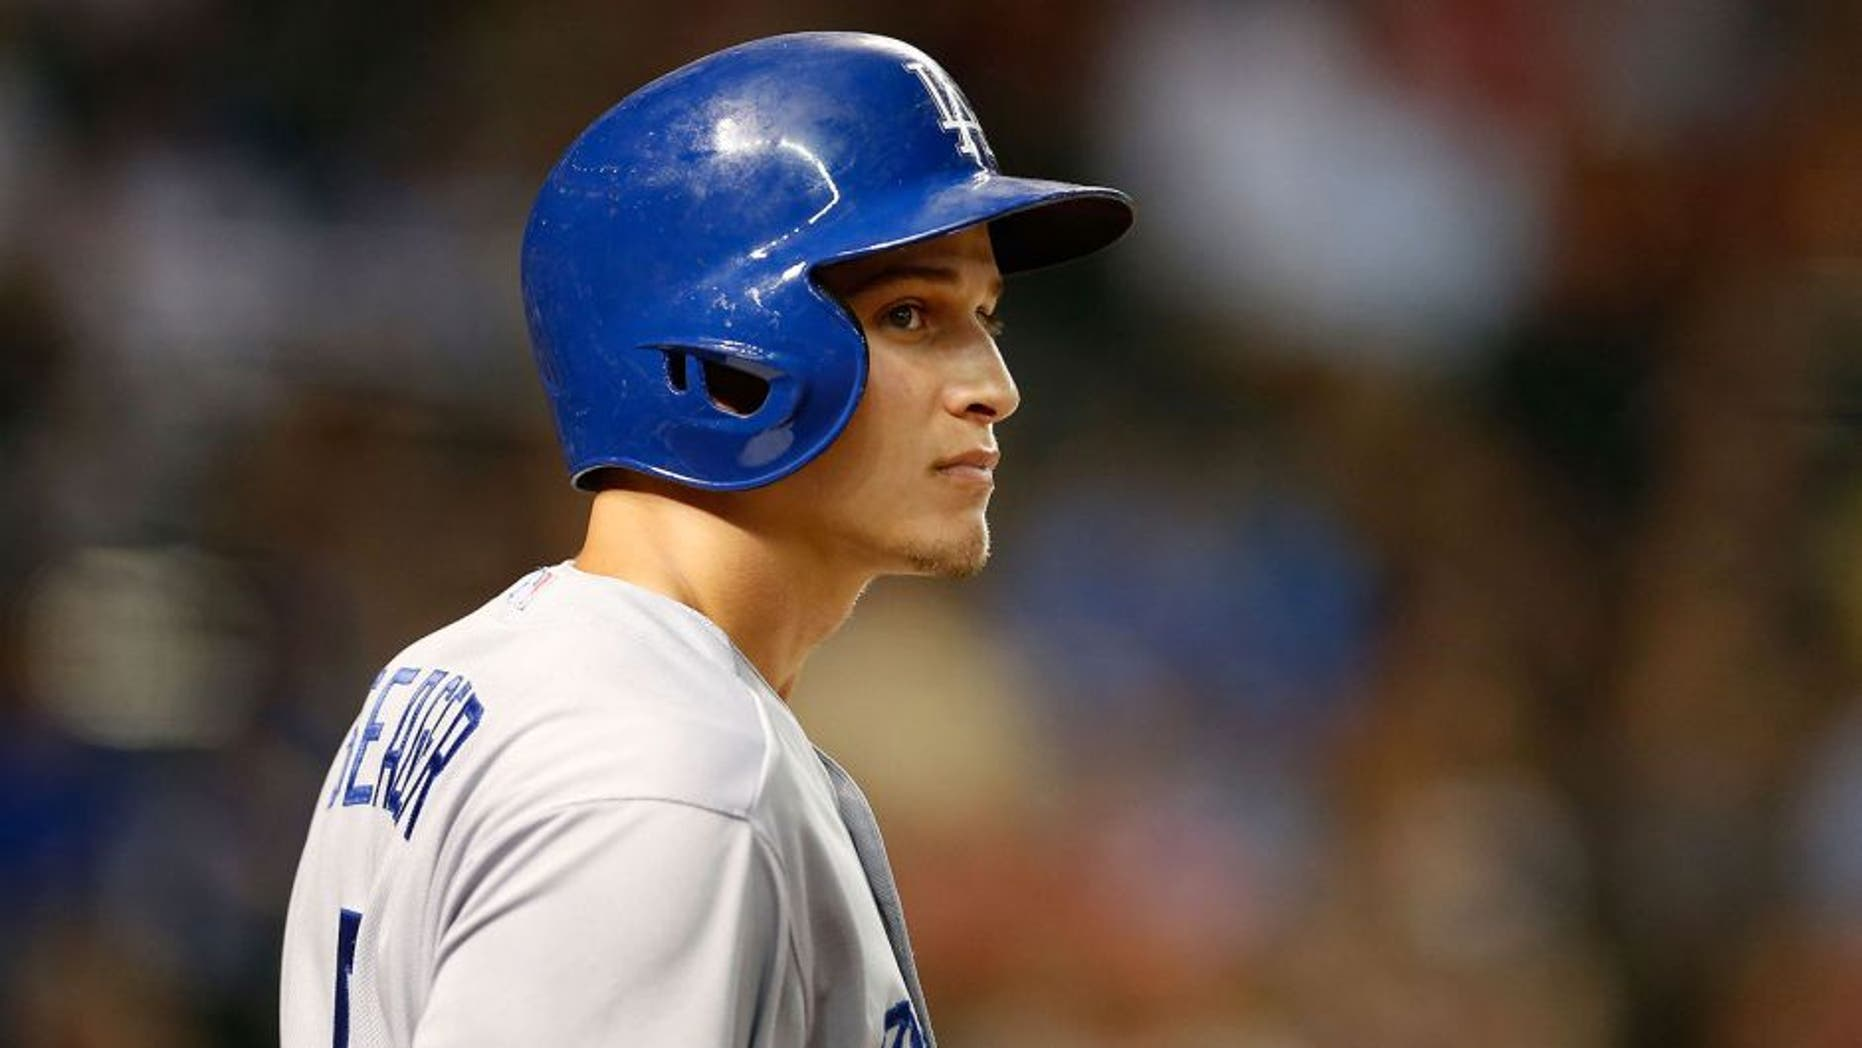 PHOENIX, AZ - SEPTEMBER 11: Corey Seager #5 of the Los Angeles Dodgers stands on deck during the MLB game against the Arizona Diamondbacks at Chase Field on September 11, 2015 in Phoenix, Arizona. The Diamondbacks defeated the Dodgers 12-4. (Photo by Christian Petersen/Getty Images)